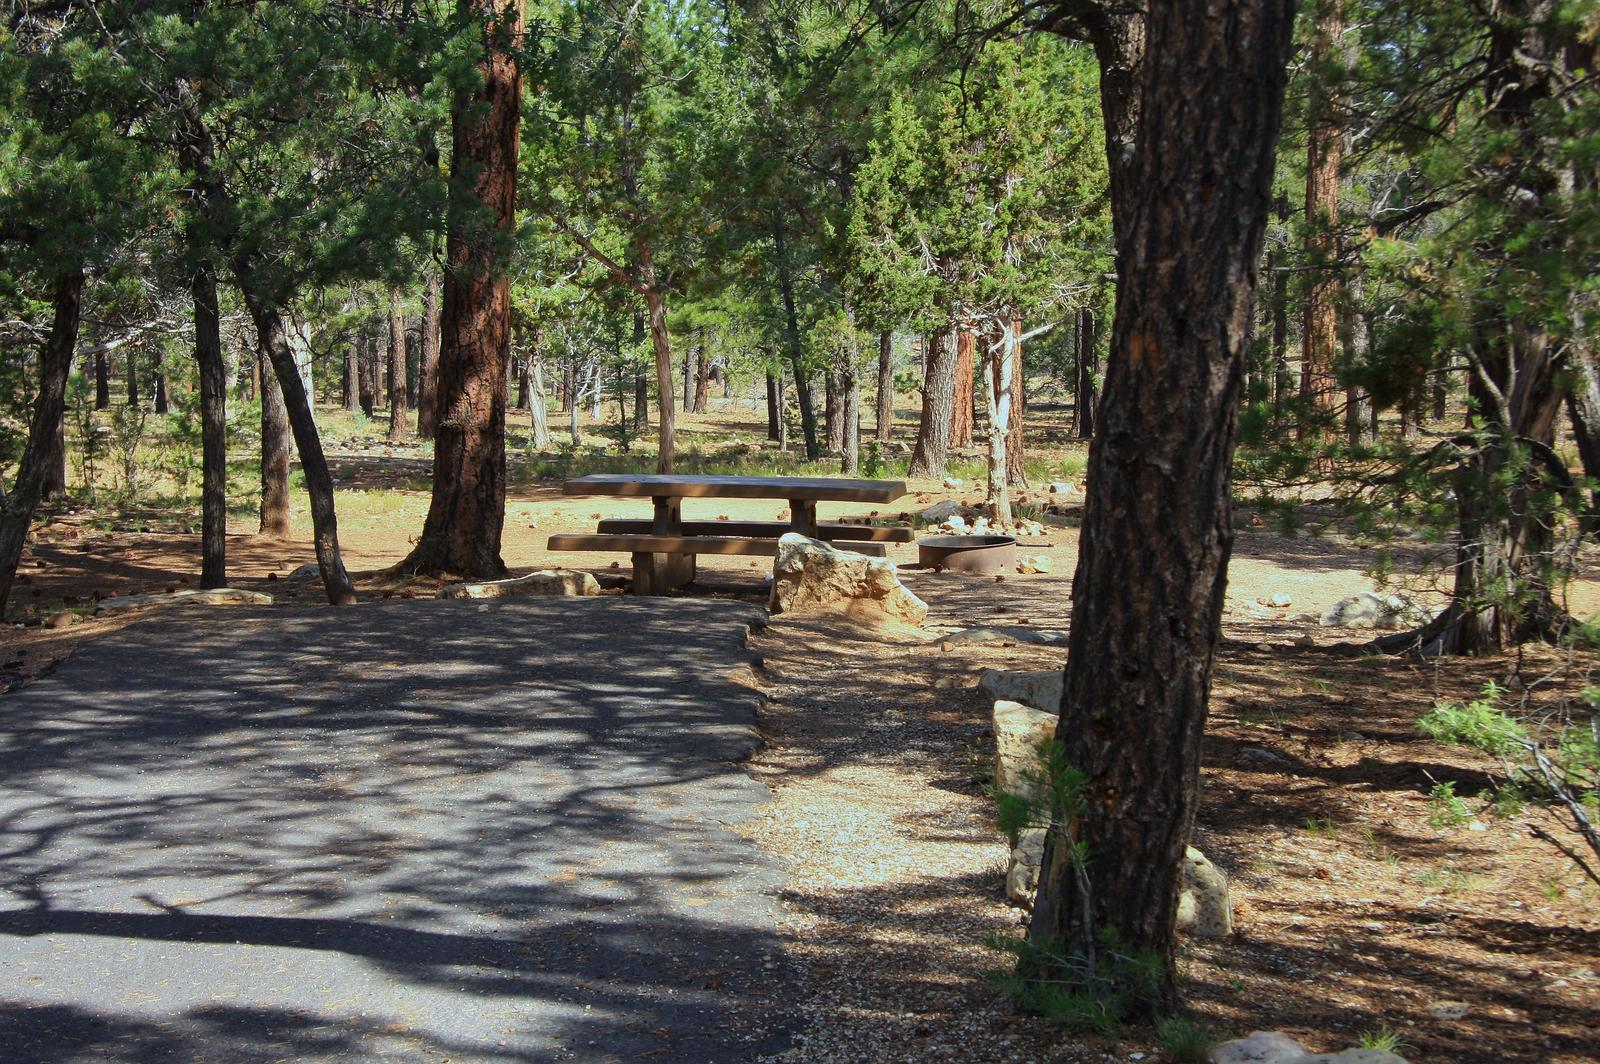 Picnic table, fire pit, and park spot, Mather CampgroundPicnic table, fire pit, and park spot for Oak Loop 226, Mather Campground